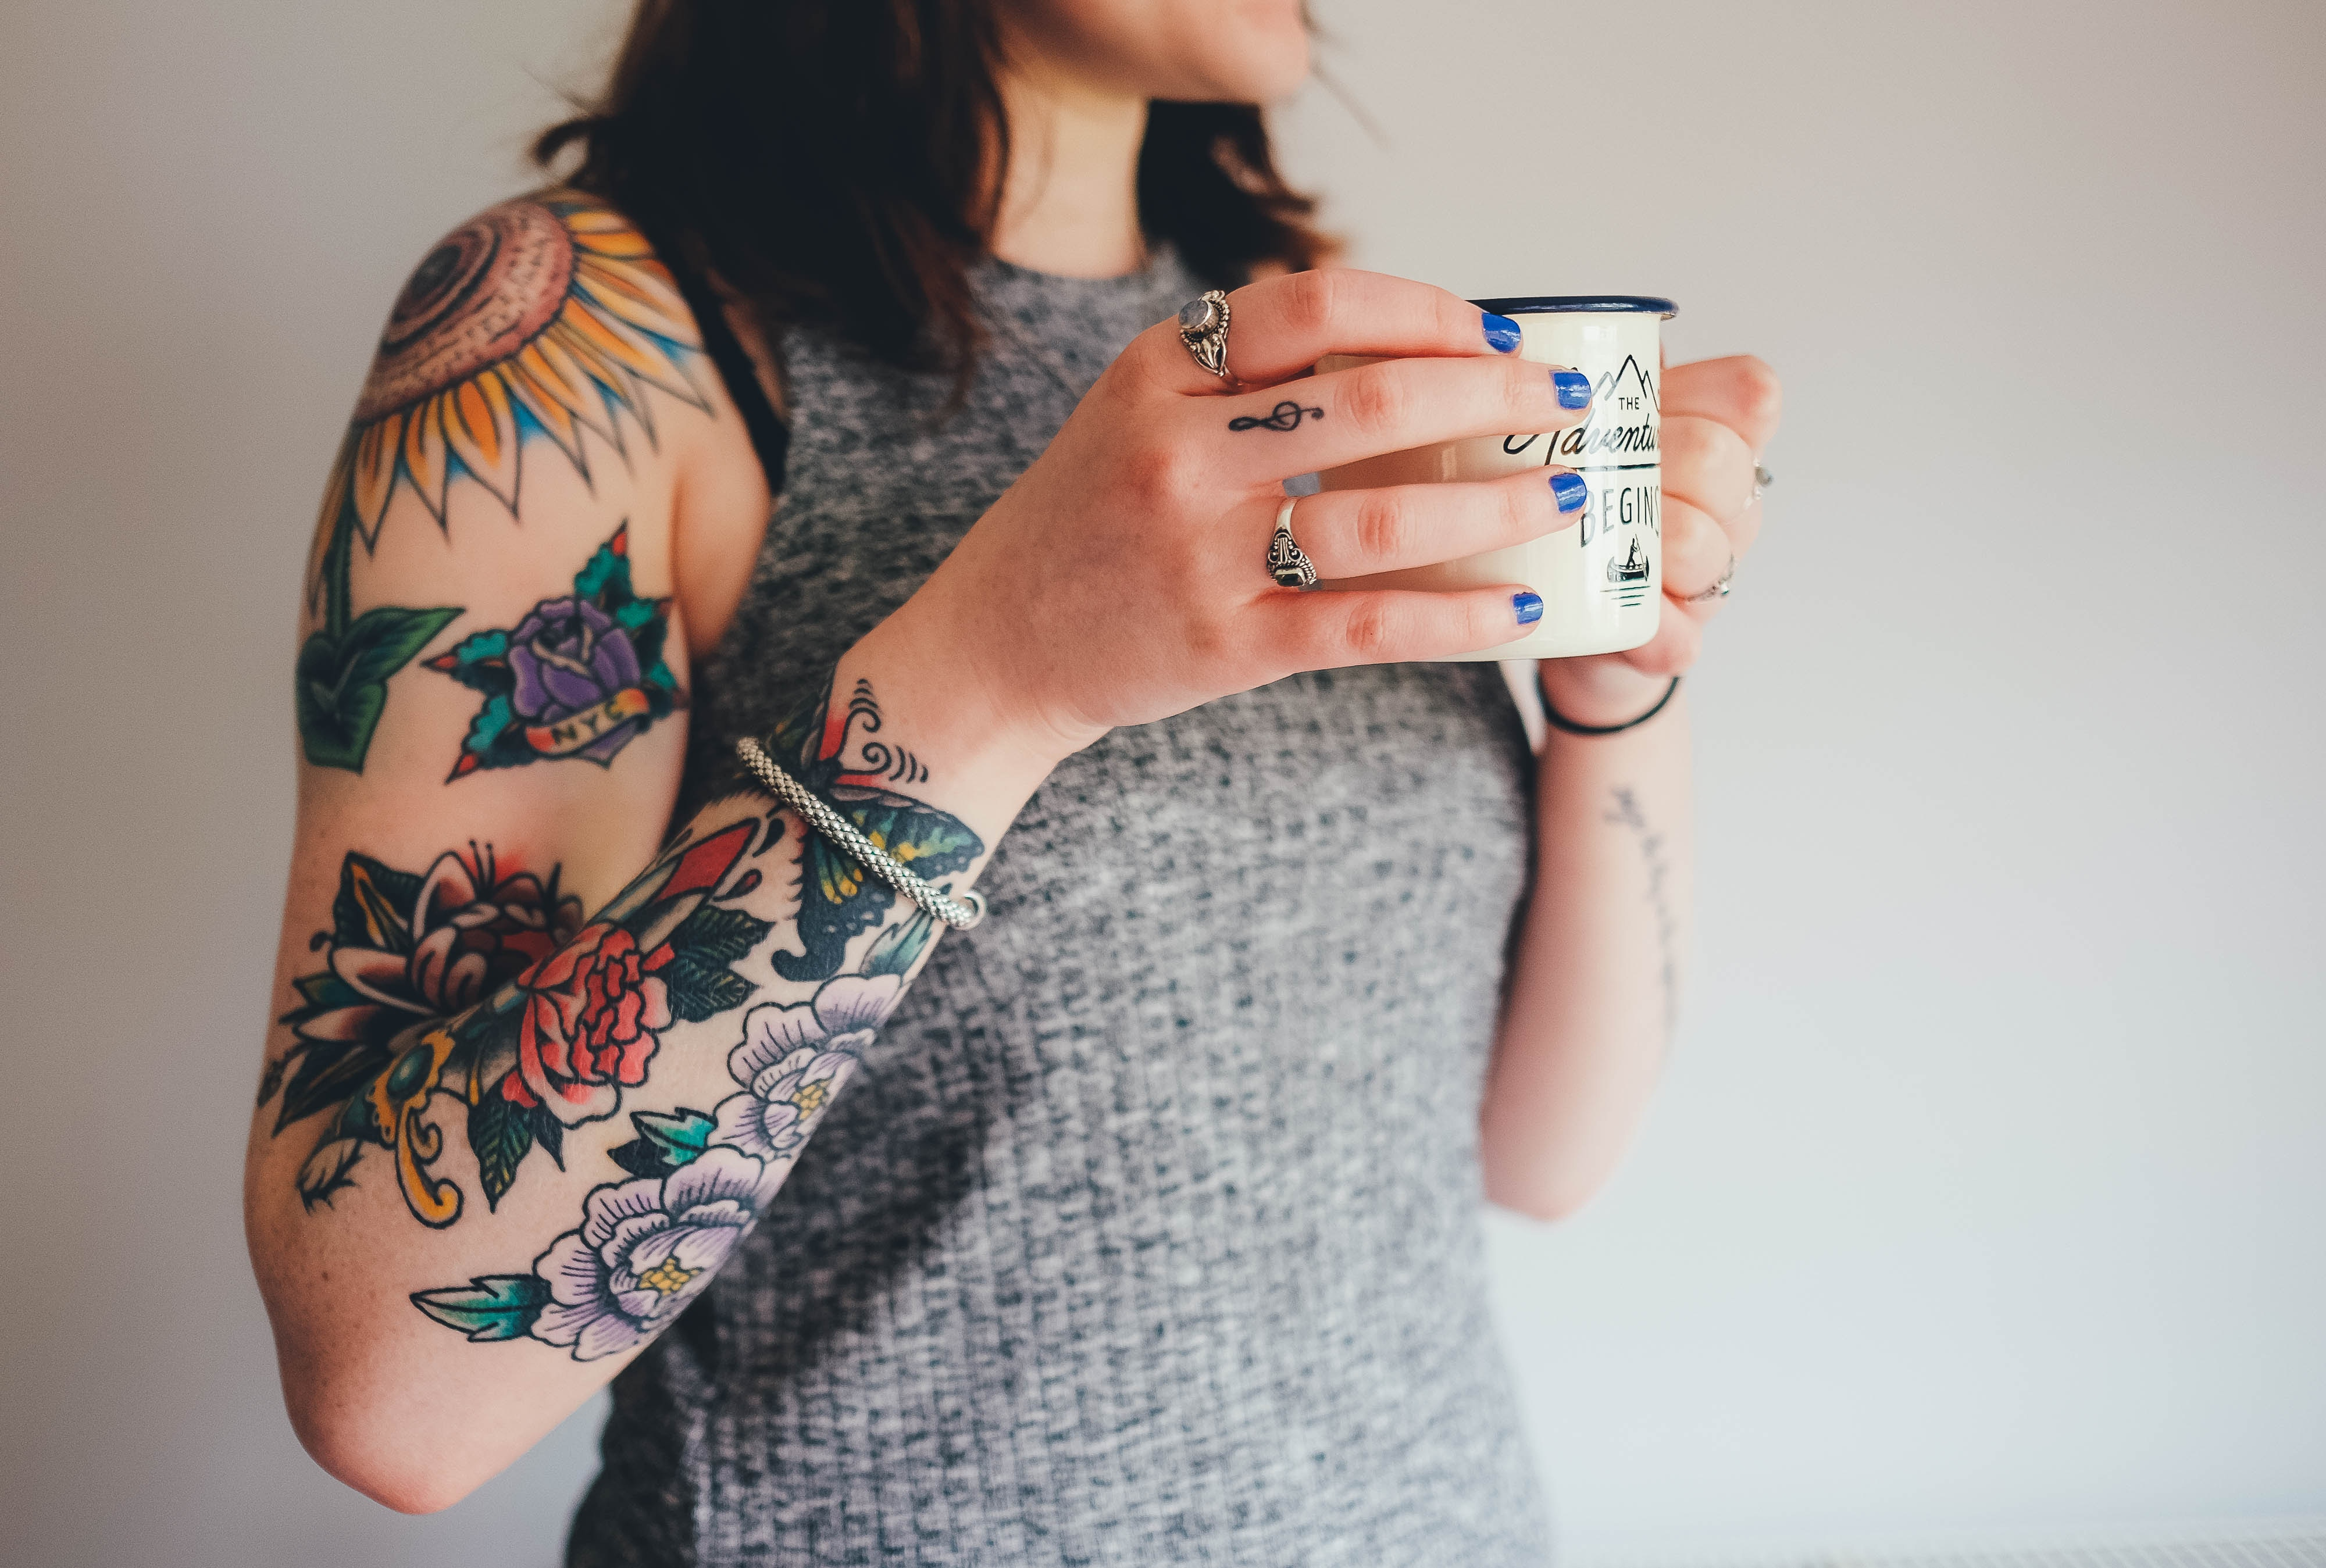 eab4204cdc567 Tattoo Parlors Are Bragging About Their 'Healthy' Vegan Tattoos